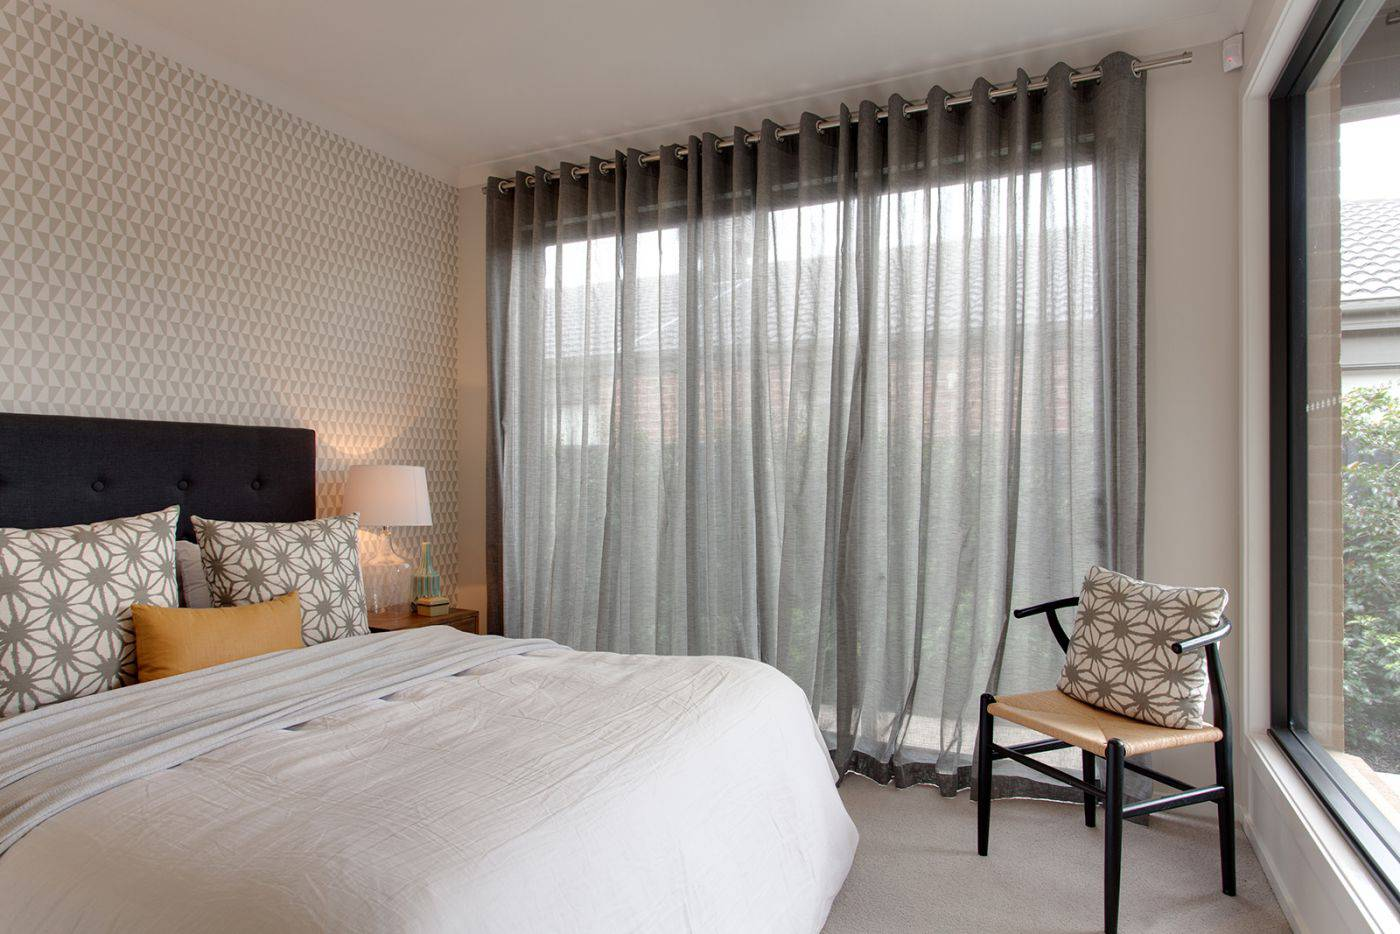 How To Make A Bedroom Curtains